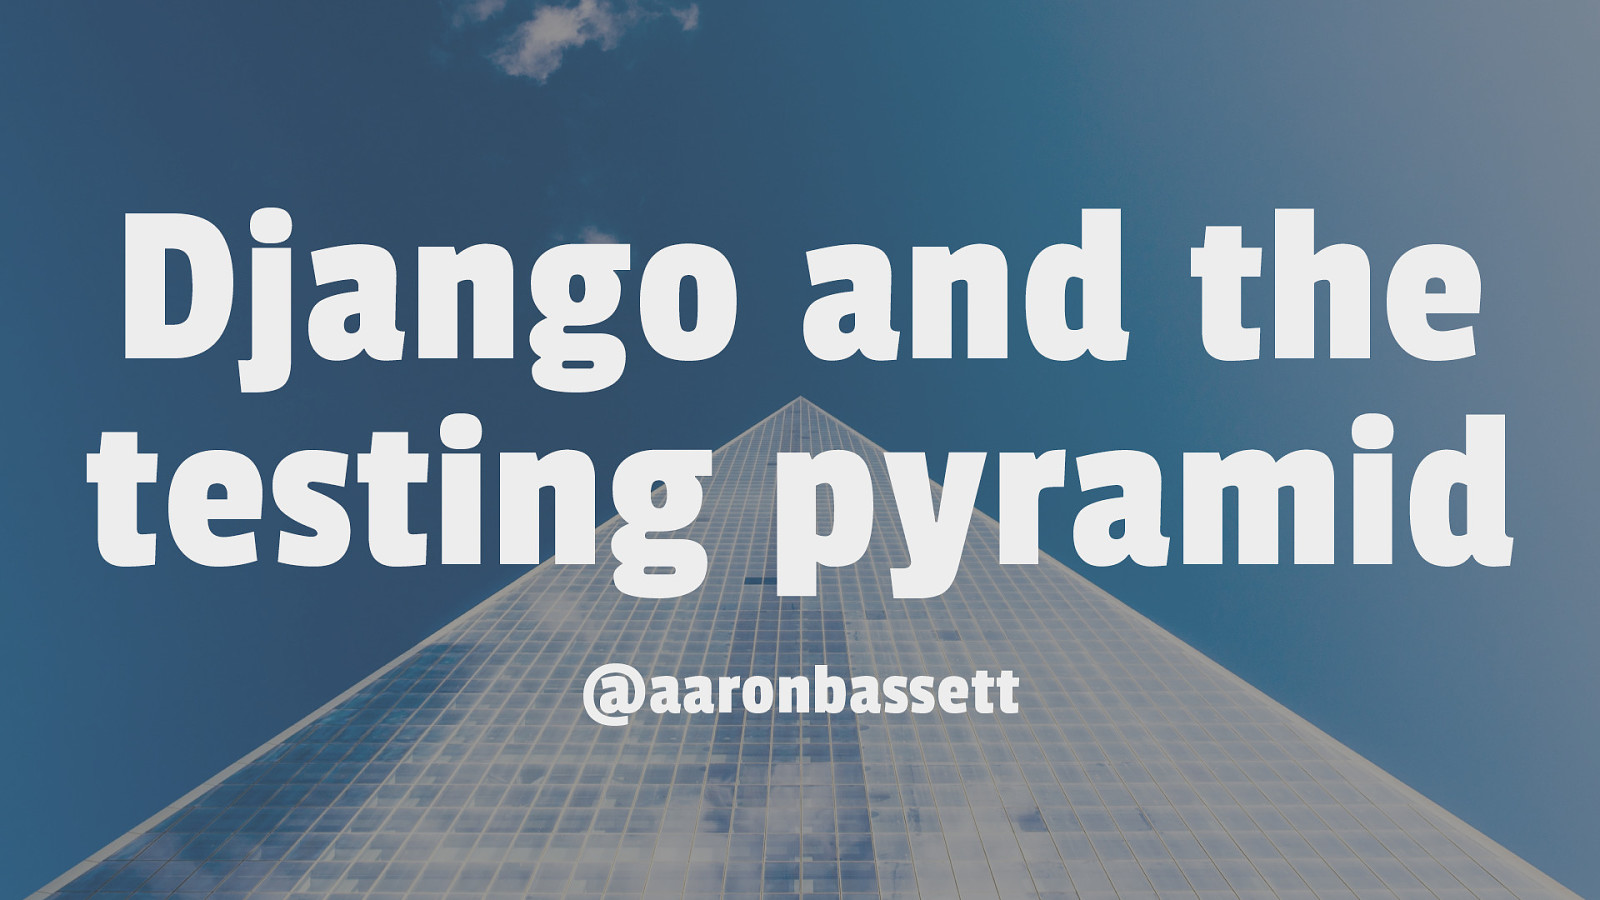 Django and the testing pyramid